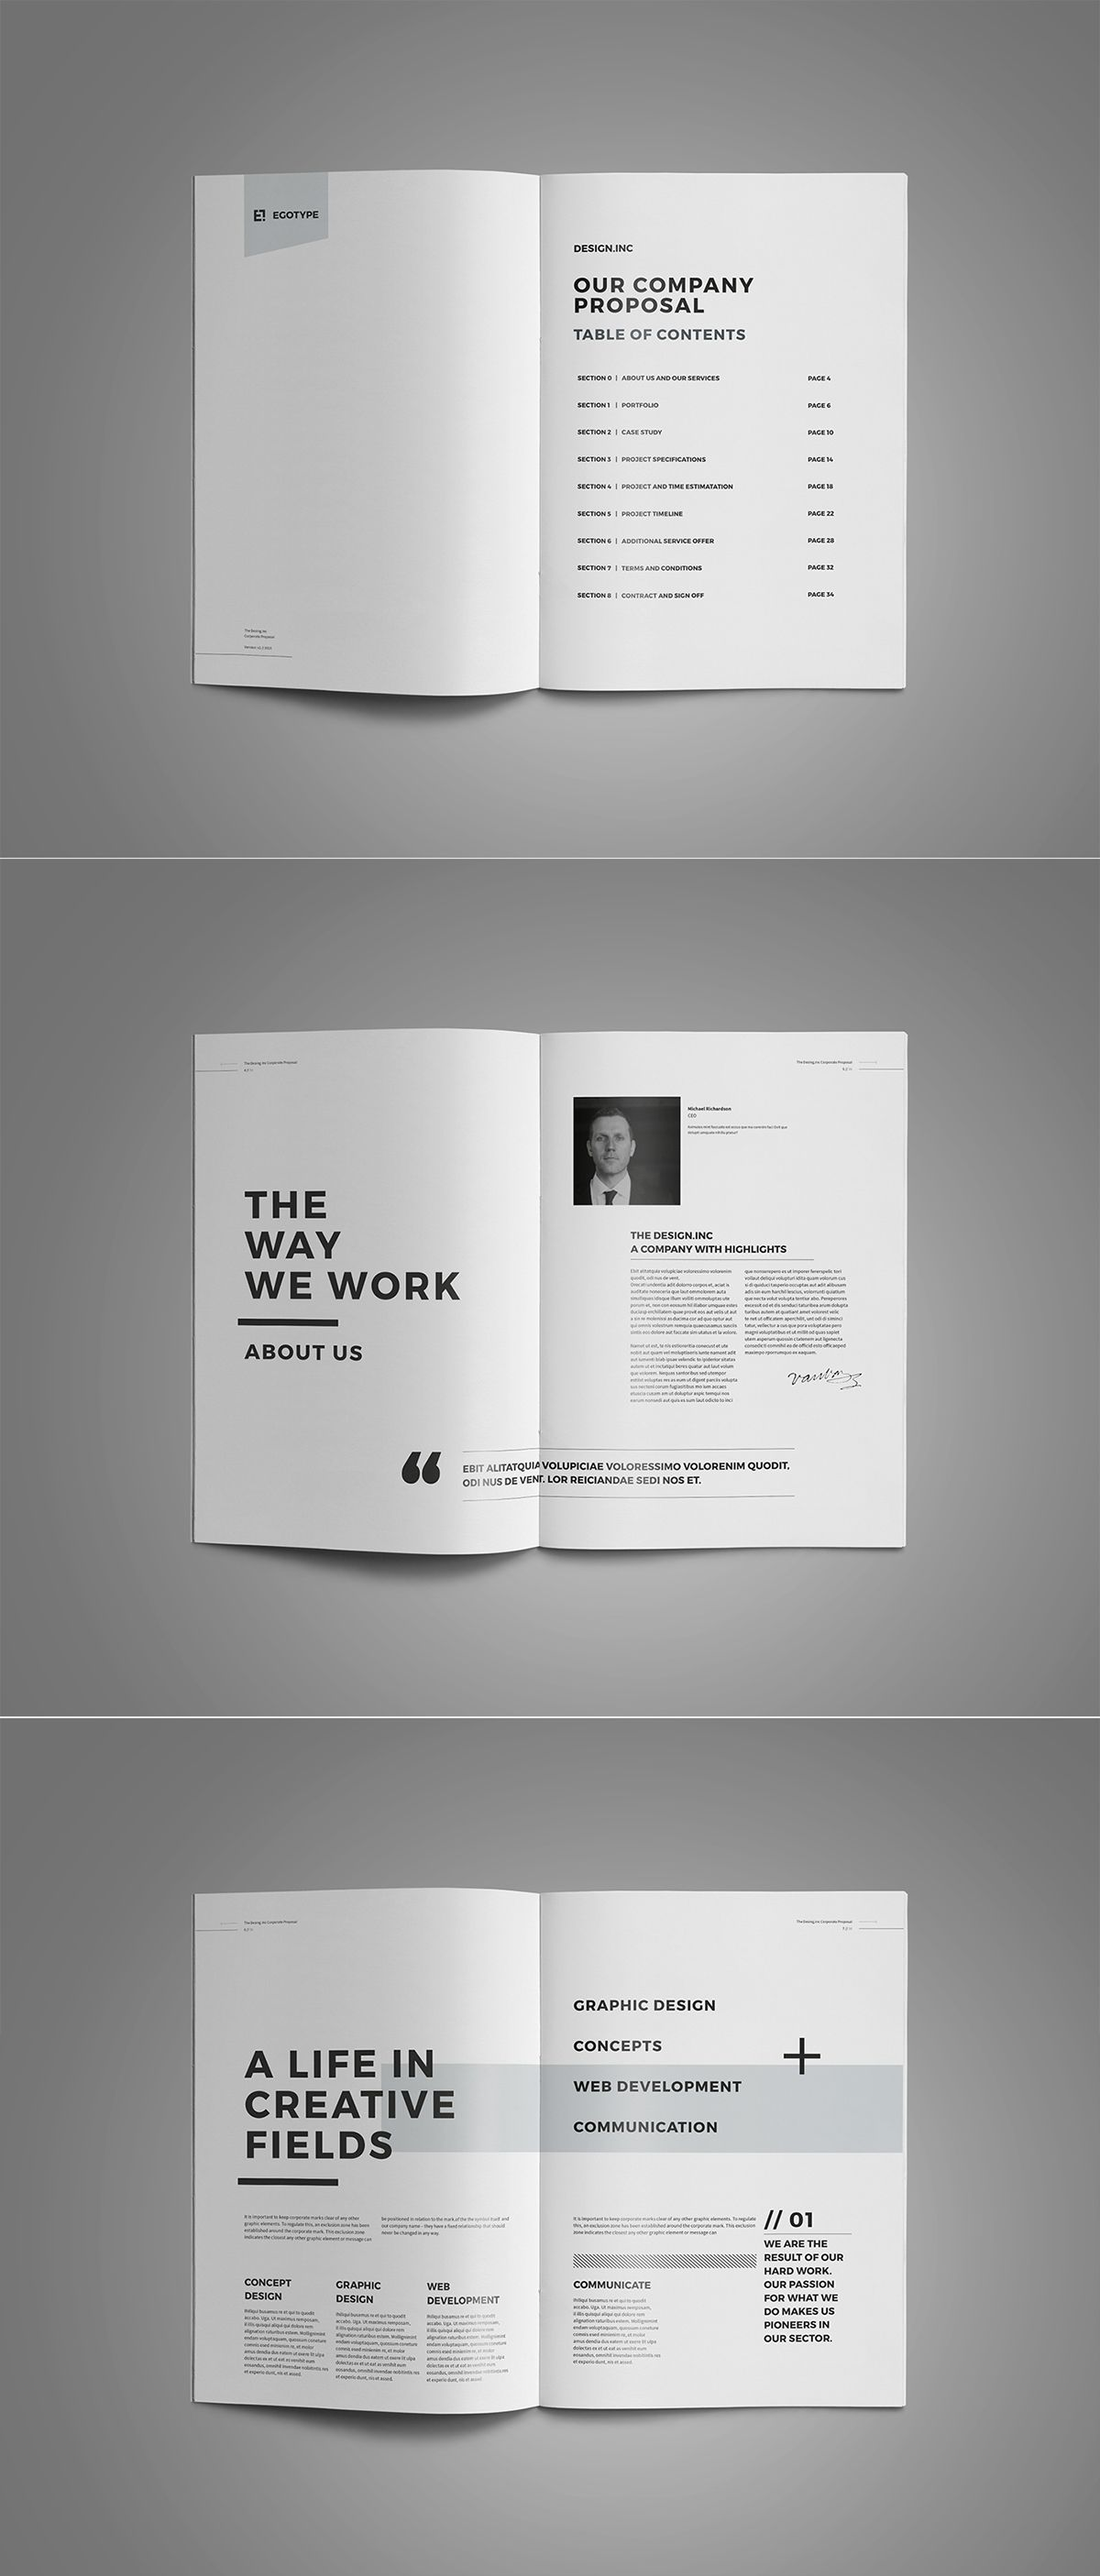 proposal template for word%0A Proposal and Portfolio TemplateMinimal and Professional Proposal Brochure  template for creative businesses  created in Adobe